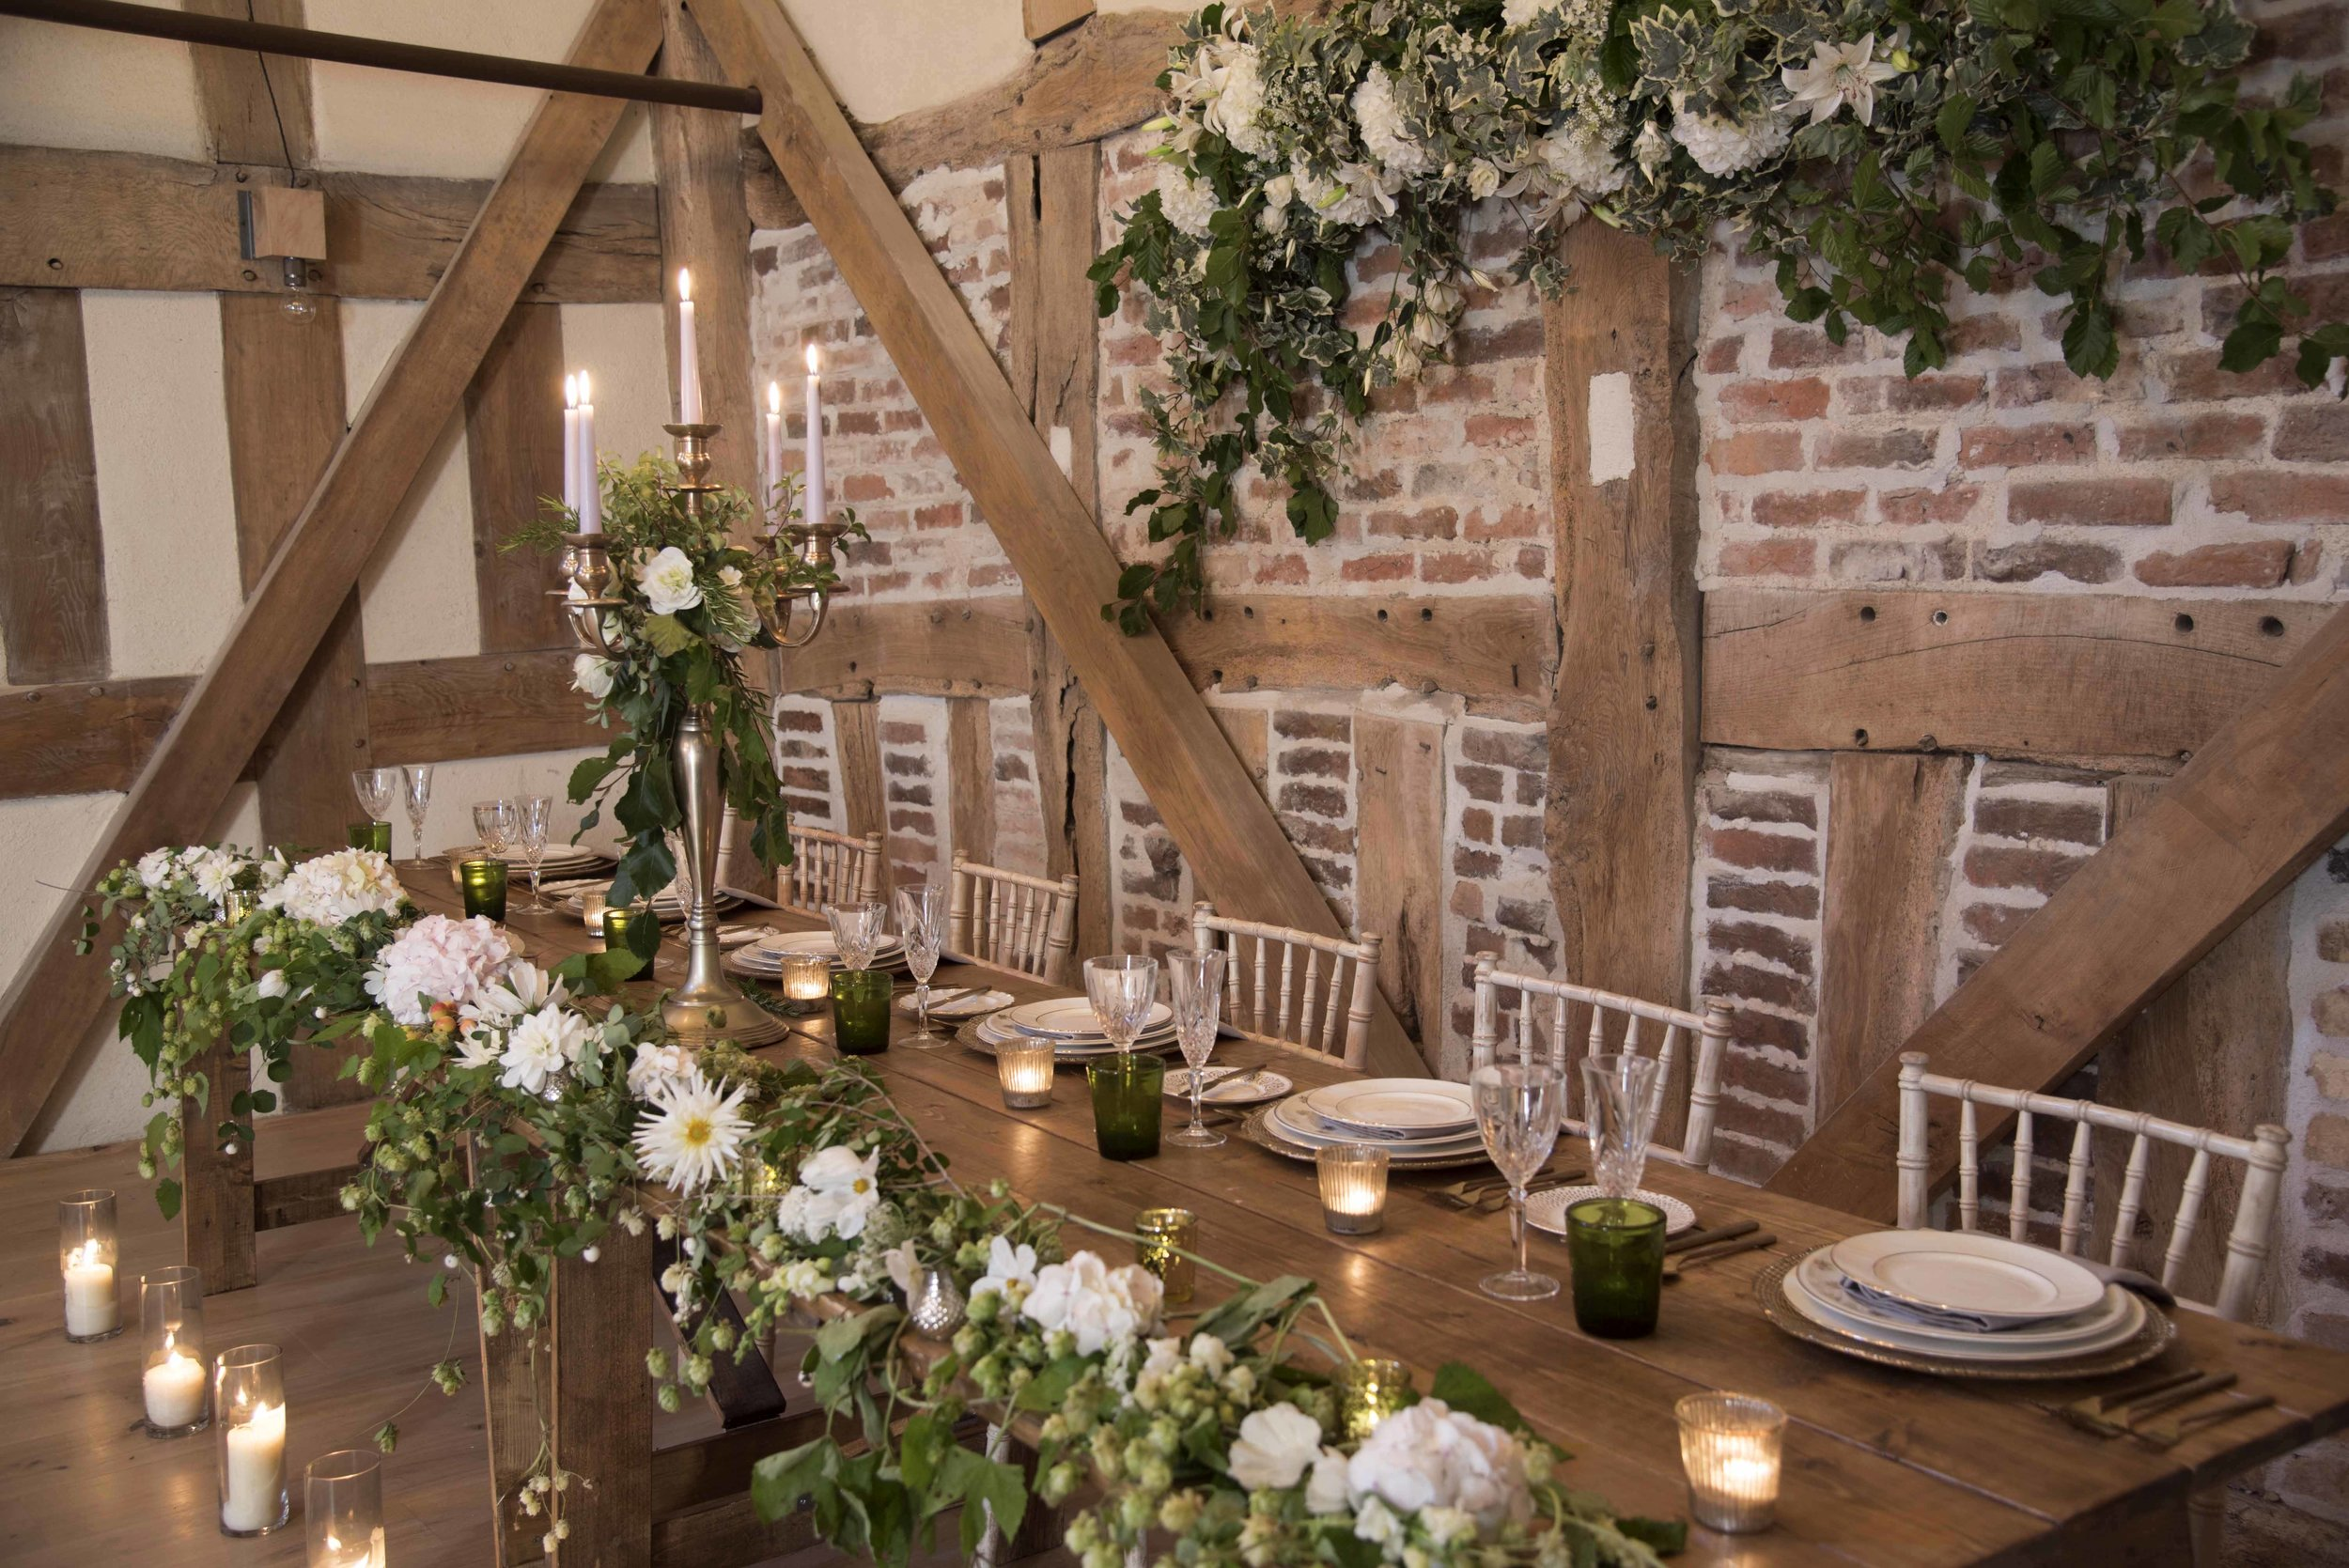 Country wedding style top table with white flowers.jpg